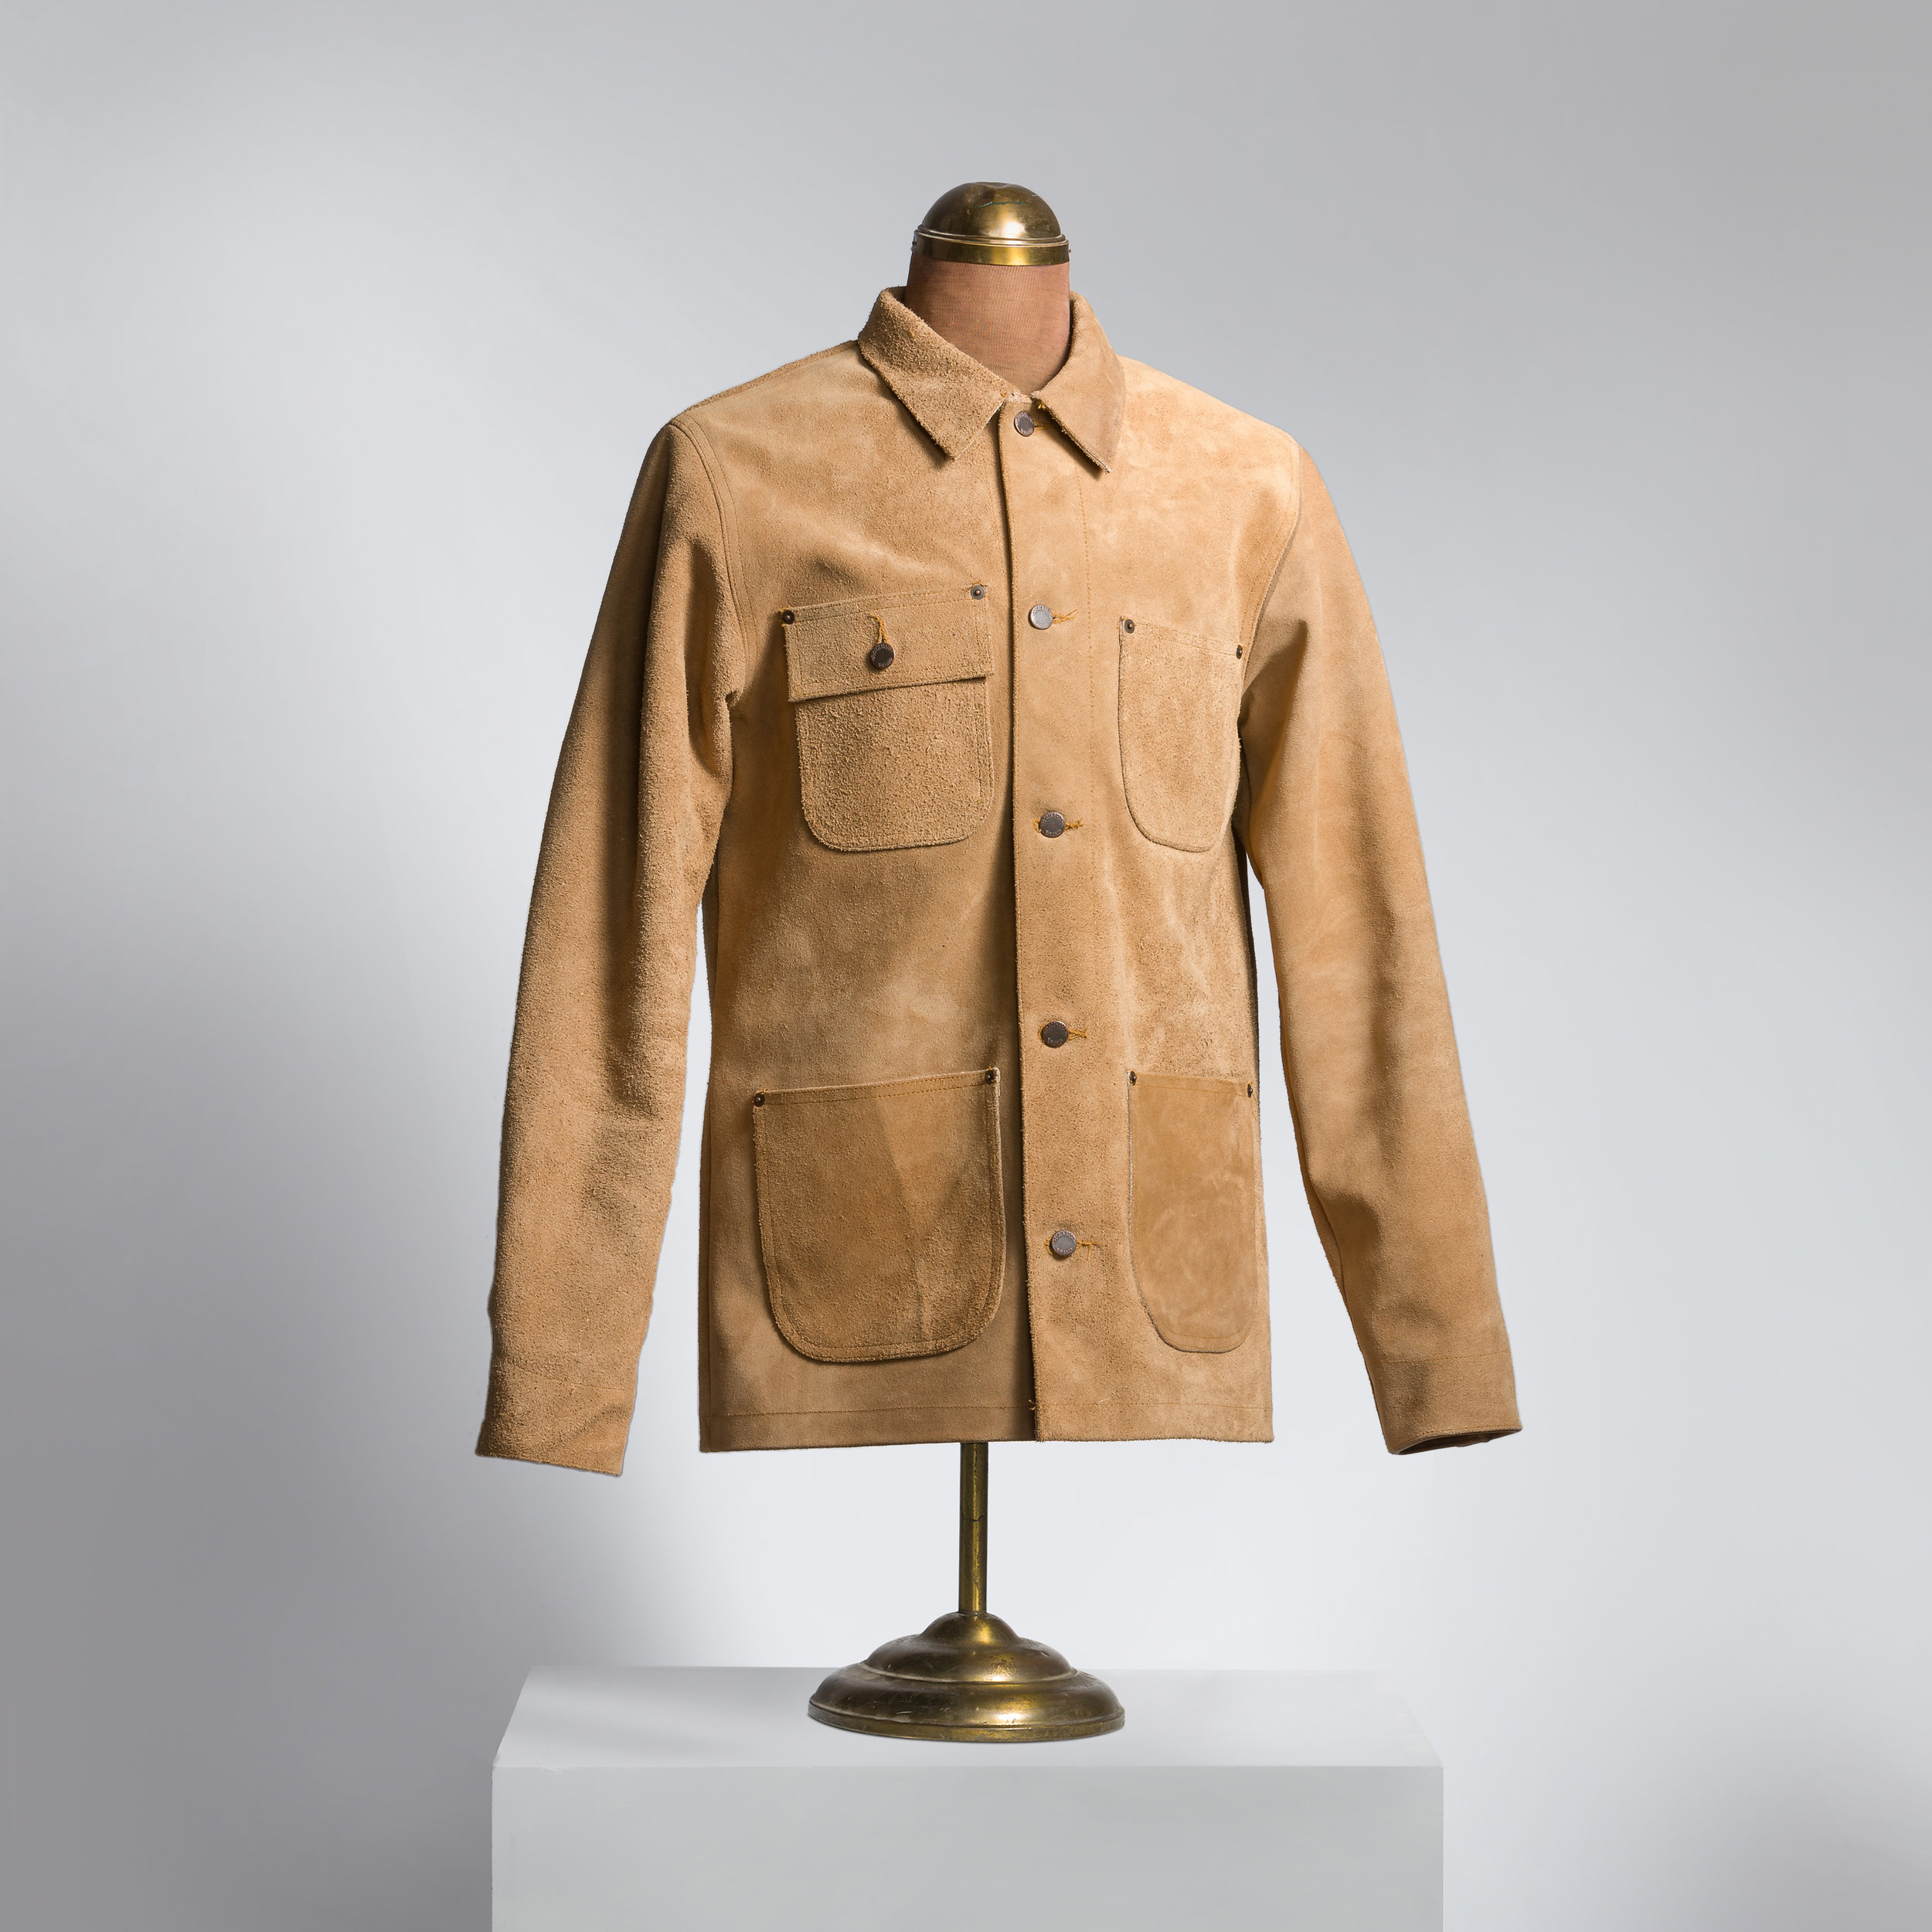 Horween Rough-Out ORION Chore/Jacket